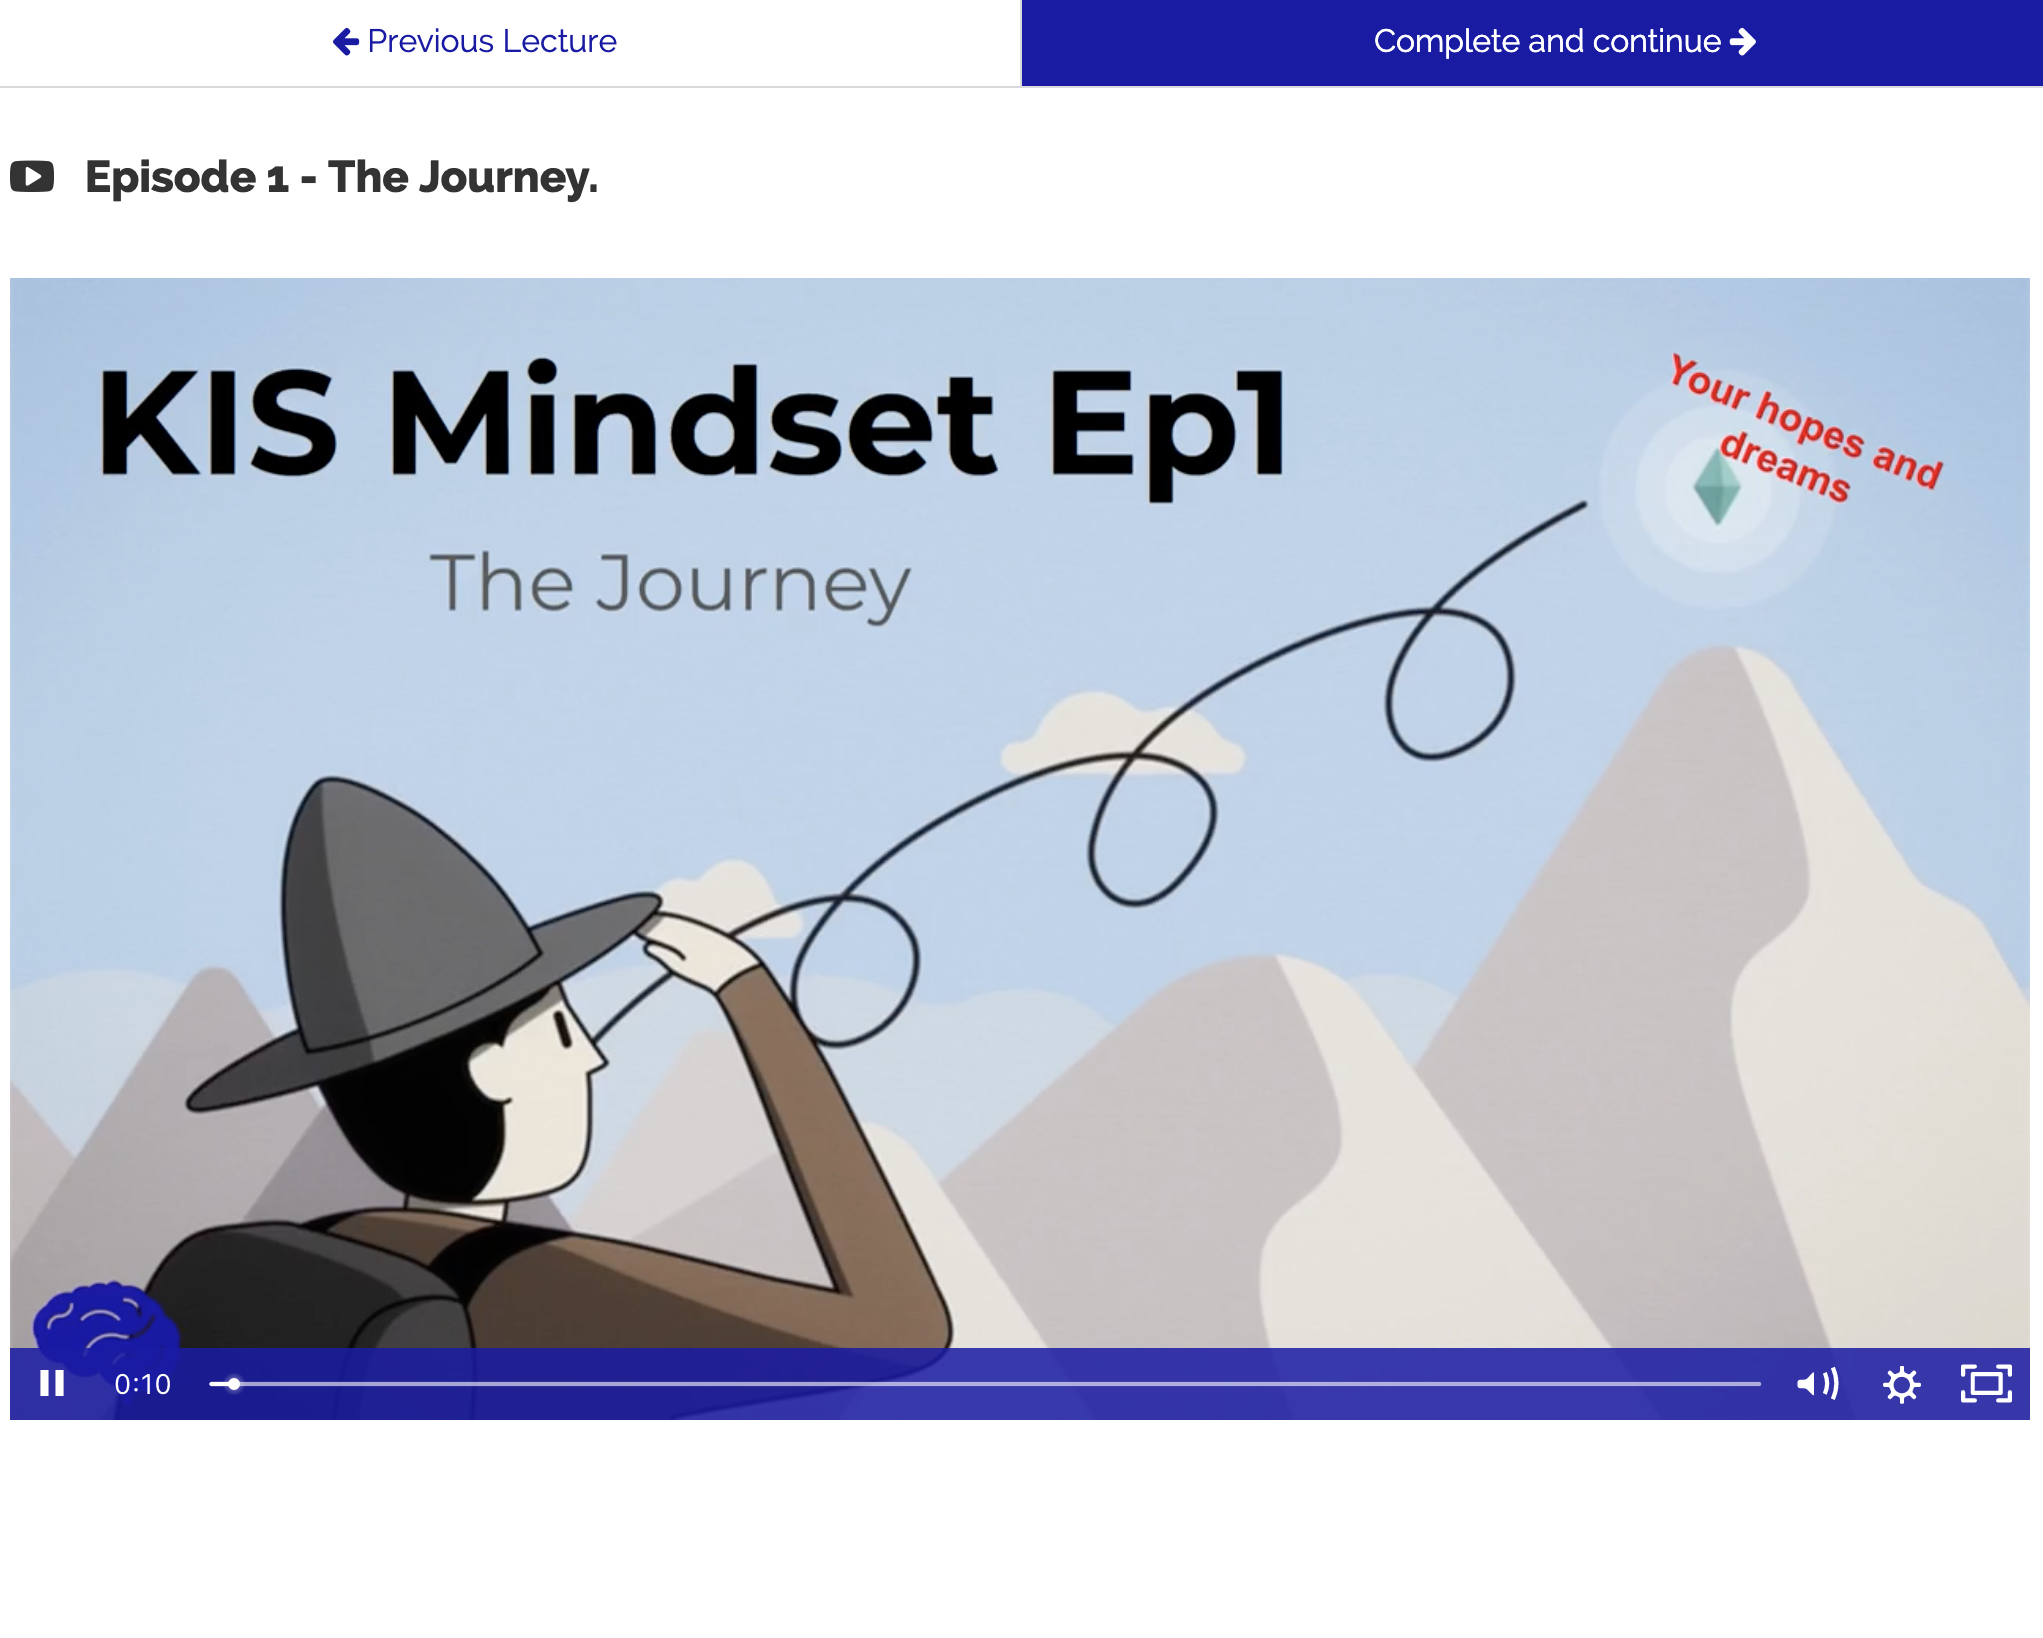 Image of the KIS Mindset Module Online Course